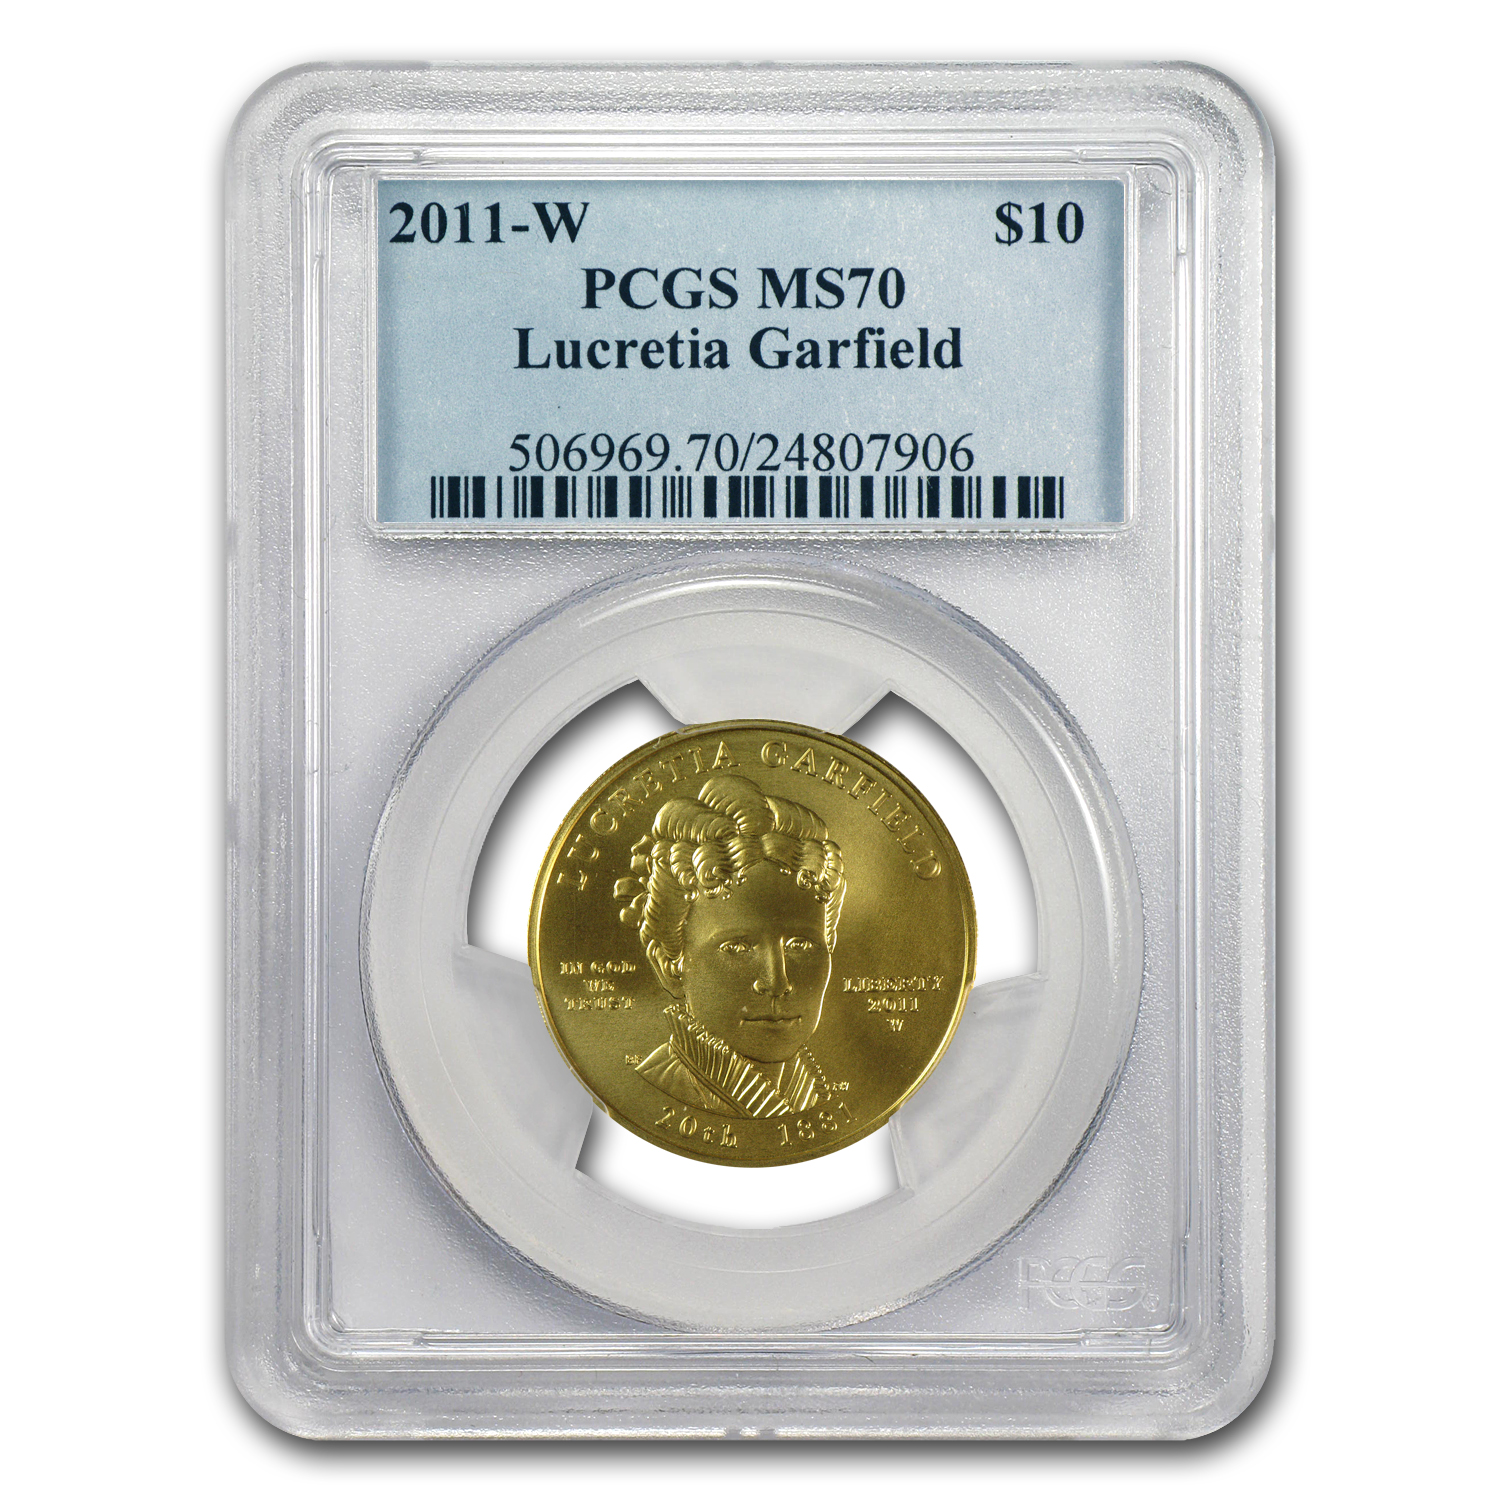 2011-W 1/2 oz Gold Lucretia Garfield MS-70 PCGS